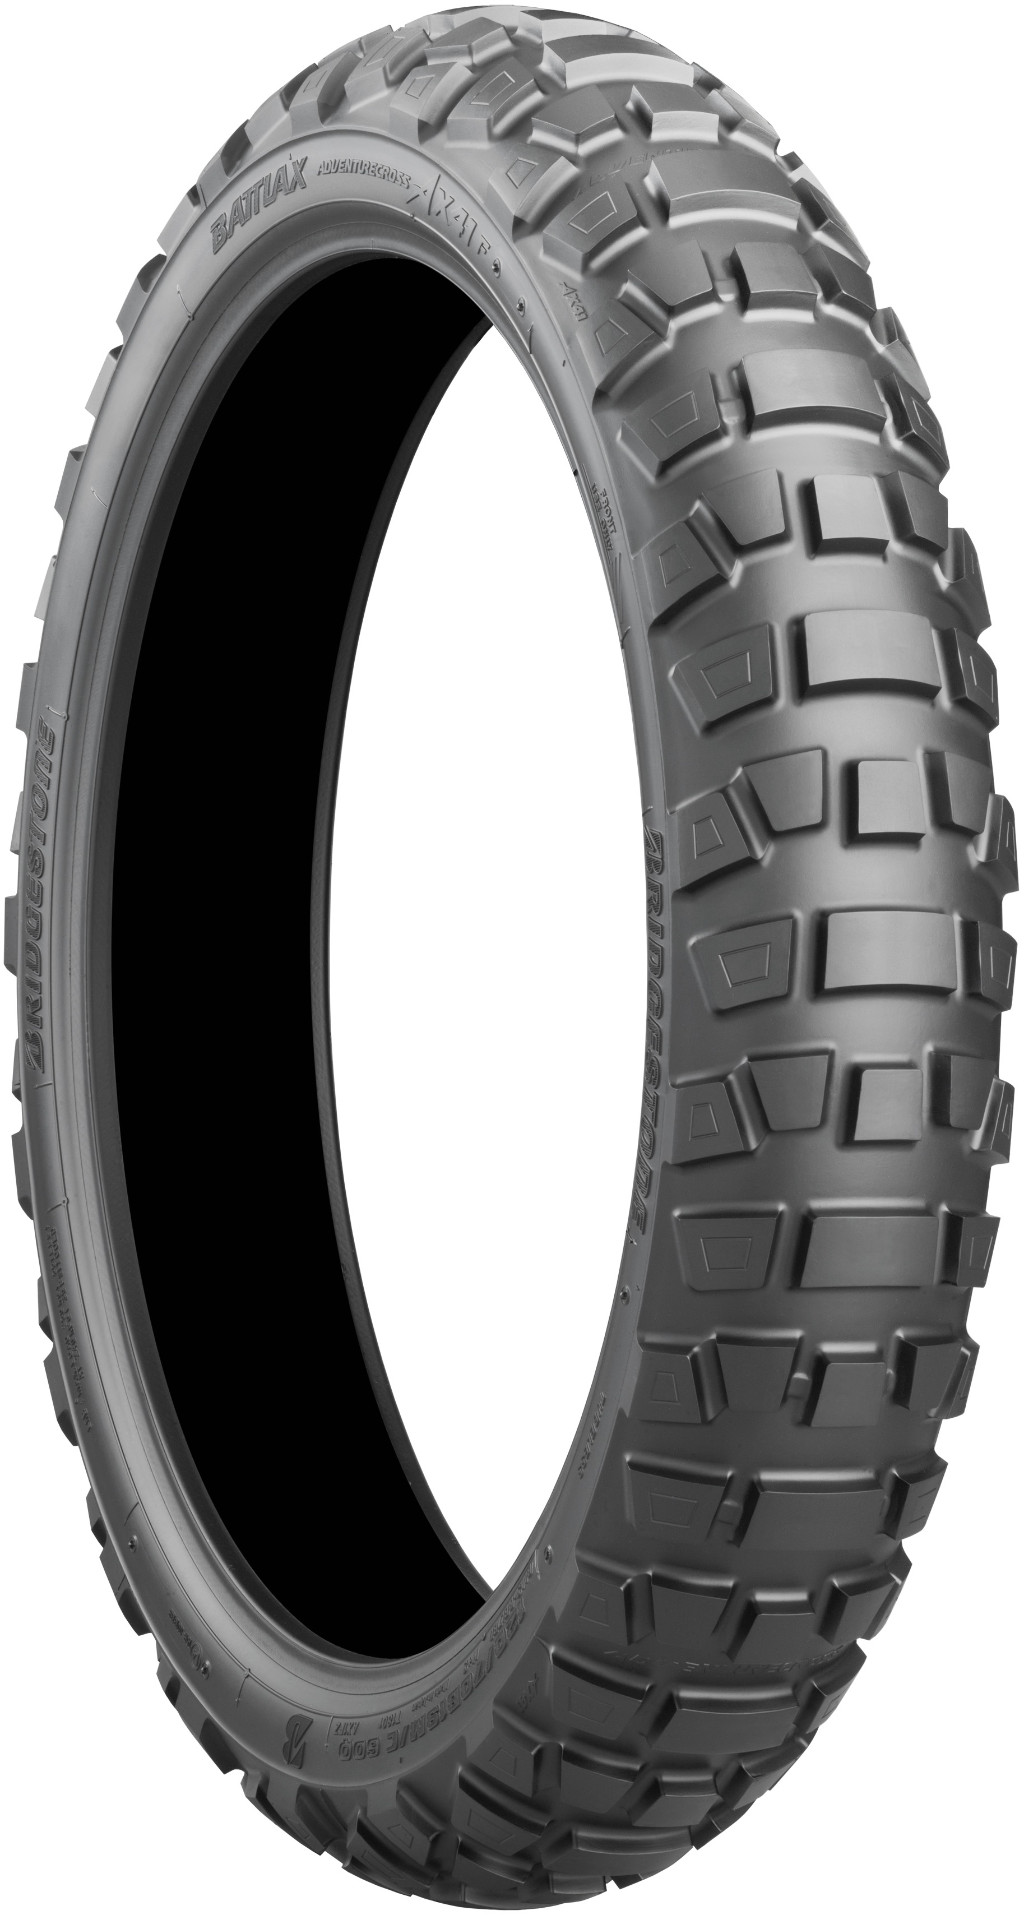 BRIDGESTONE BATTLAX ADVENTURECROSS AX41 [90/90- 21M/C 54Q] Tire